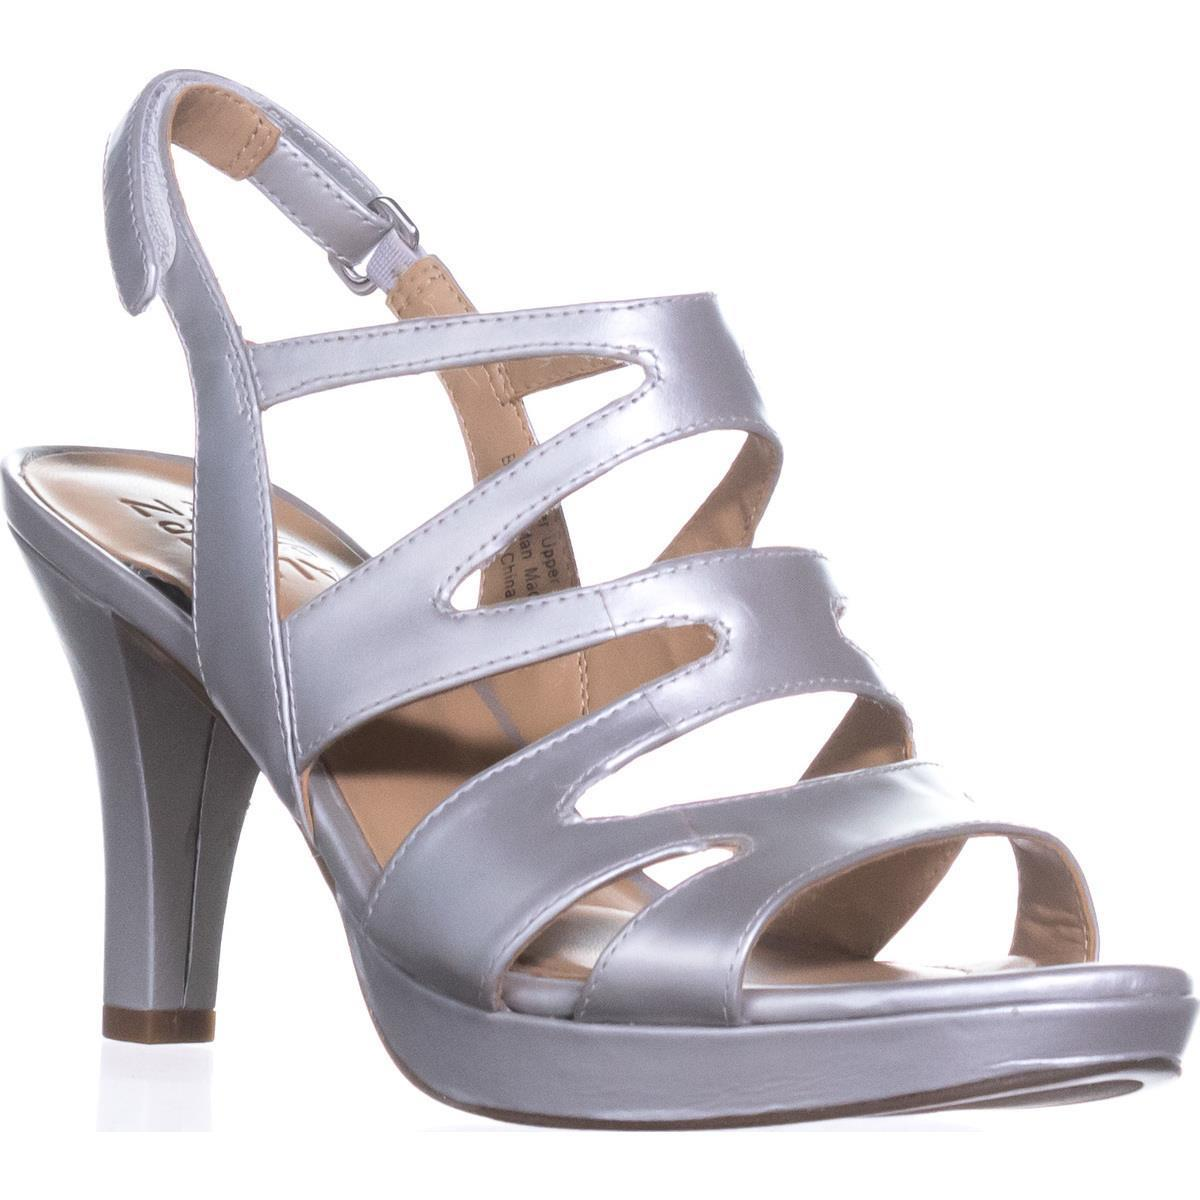 Womens Naturalizer Pressley Platform Strappy Dress Sandals, Soft Silver by Naturalizer